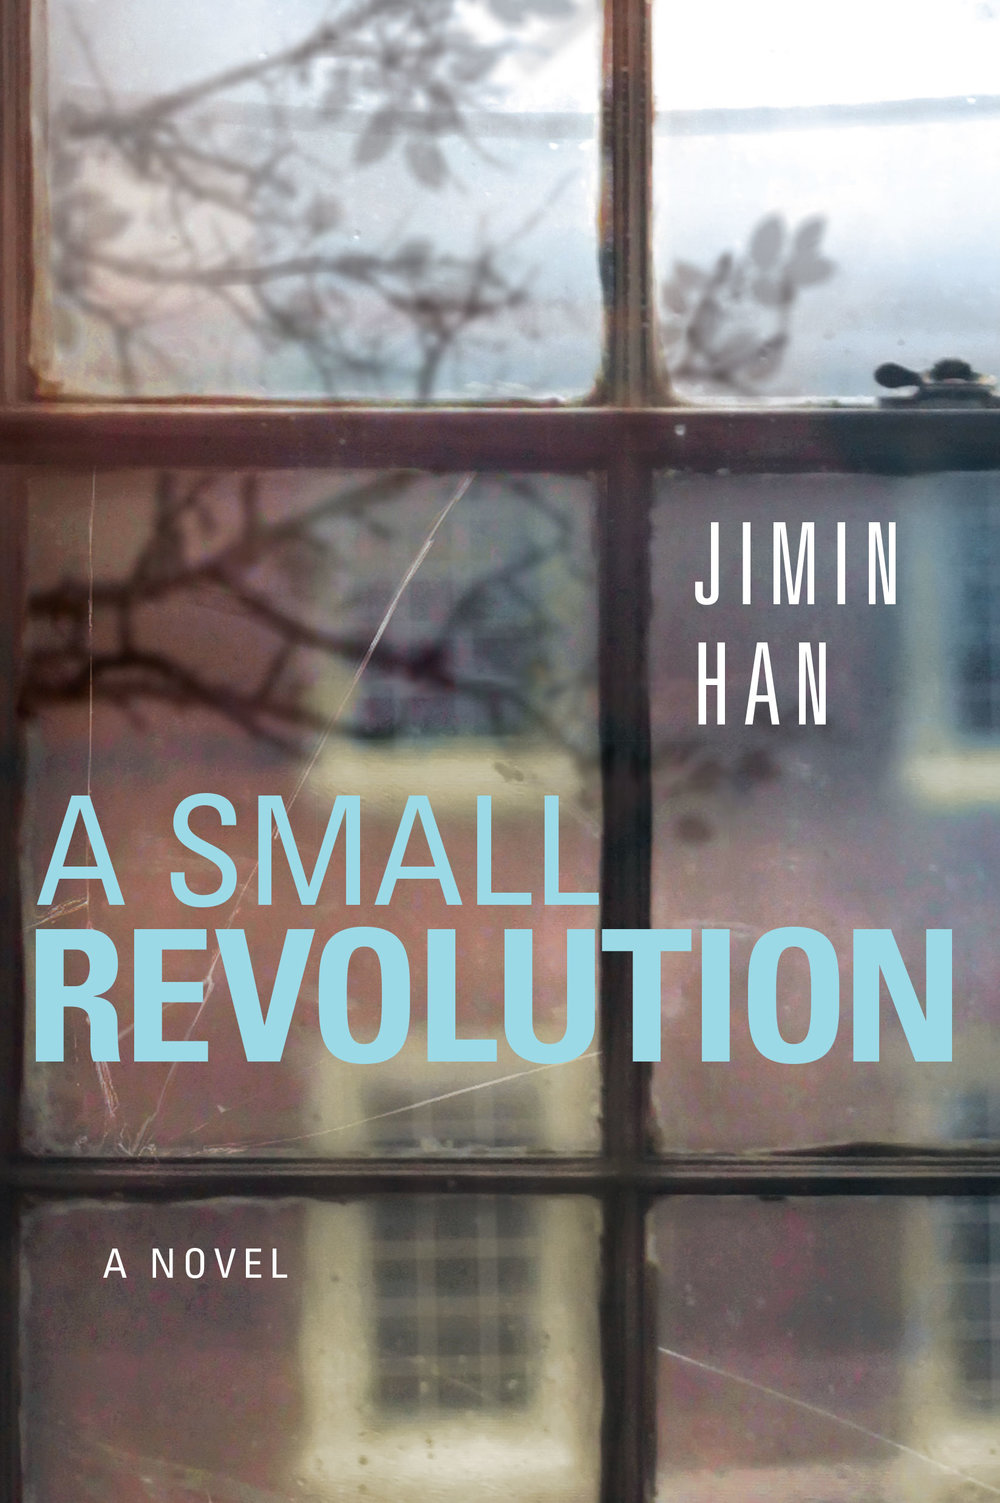 """We've all wondered what it's like inside the rooms where the horrors unfold. Jimin Han's relentless, timely  A Small Revolution  grabs you by the collar and pulls you inside, then back through her sympathetic character's history to answer that question: How does a good girl end up inside a brutal disaster? How does young love become a mirage of political activism—and accident become hostage-taking and murder? Open the book; remember to breathe.""  —Gwendolen Gross, author of  When She Was Gone  and  The Orphan Sister    ""On the heels of South Korea's 1980s era pro-democracy uprisings, Jimin Han's gripping debut novel,  A Small Revolution , explores the volatile space between love and loss, desperation and deed.""  —Julie Iromuanya, author of  Mr. and Mrs. Doctor , a finalist for 2016 PEN/Faulkner Award and 2016 PEN/Robert W. Bingham Debut Fiction Award   ""Jimin Han's debut novel,  A Small Revolution , is a riveting and mysterious tale of young love, political intrigue, family secrets, and dangerous obsession rendered in prose so gripping I couldn't put it down.""  —Joy Castro, author of  The Truth Book  and  Hell or High Water    ""With exquisite precision, Jimin Han's  A Small Revolution  transforms the claustrophobic confines of an unfolding hostage crisis into an expansive meditation on the collisions between past and present, hope and fear, life and death. Elegant, elegiac, and unsettling, each new page offers insight and revelation.""  —Steve Edwards, author of  Breaking into the Backcountry    ""Jimin Han's  A Small Revolution  packs a big punch. With a front story taken from the headlines of gunmen on college campuses and a haunting backstory of events in Korea, our protagonist is forced into walking a tightrope between two worlds, as well as the past and present.""  —Alan Russell, author of  Lost Dog"